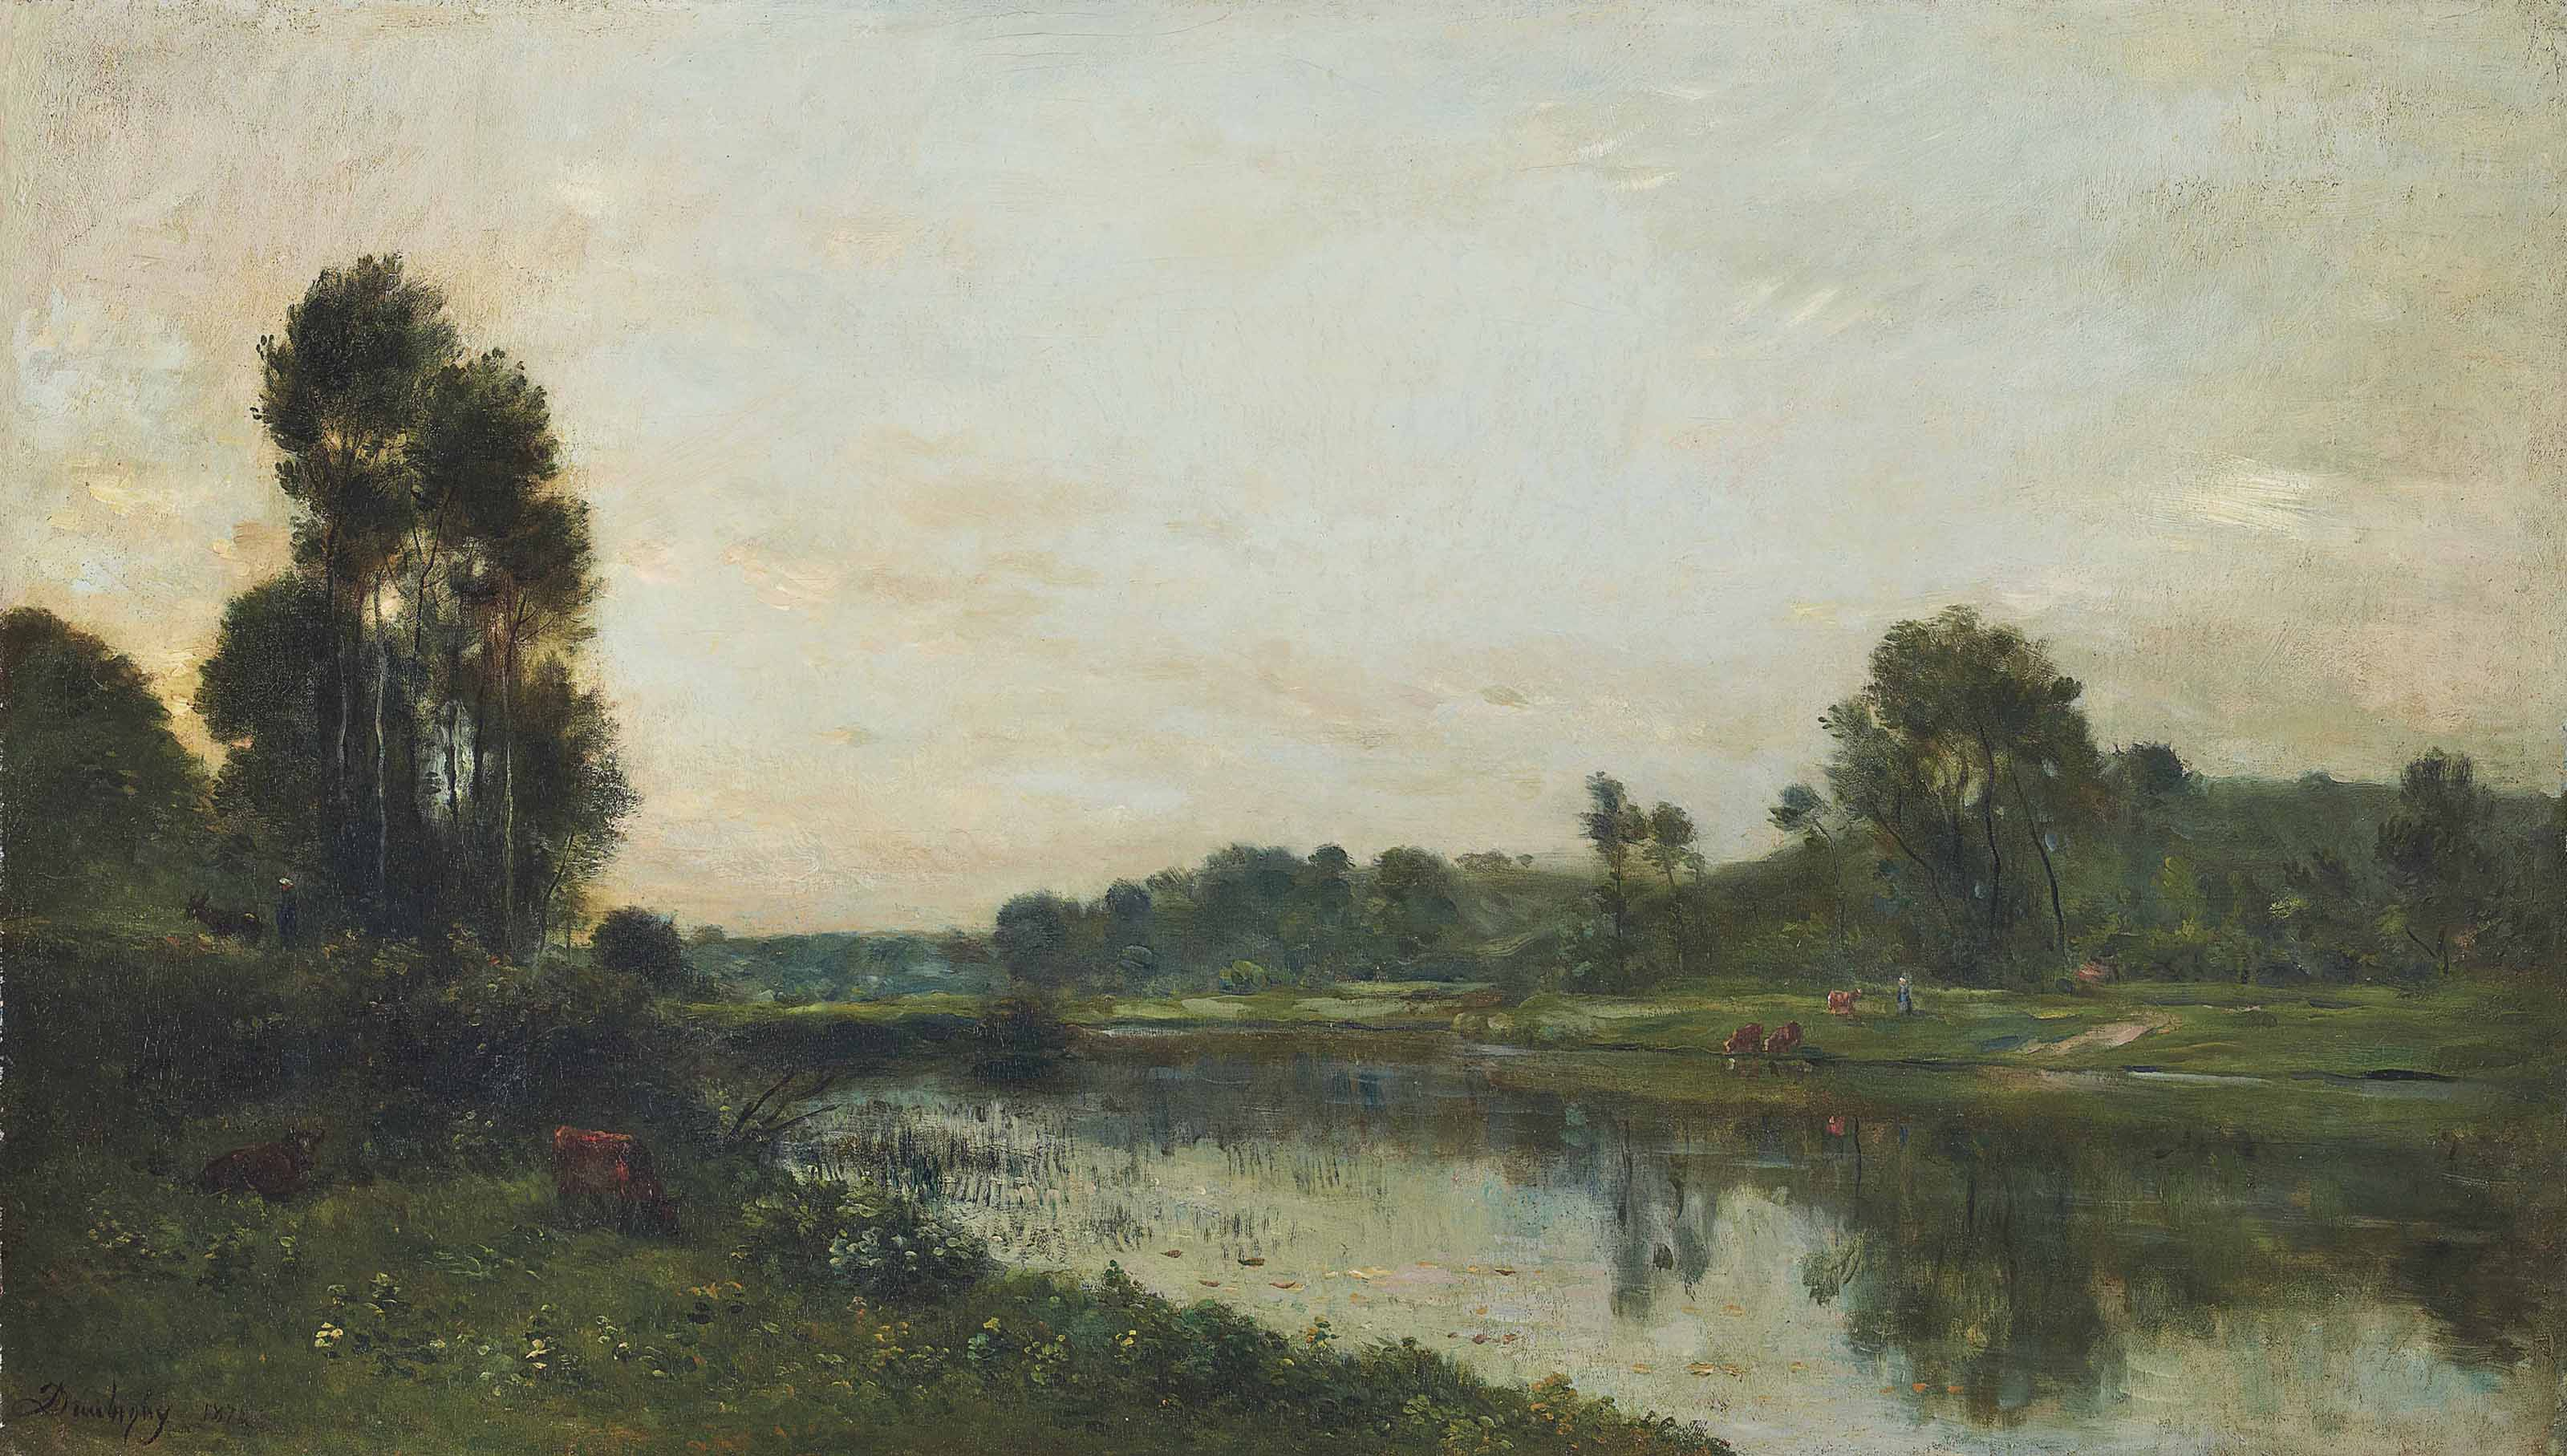 Les Bords de l'Oise